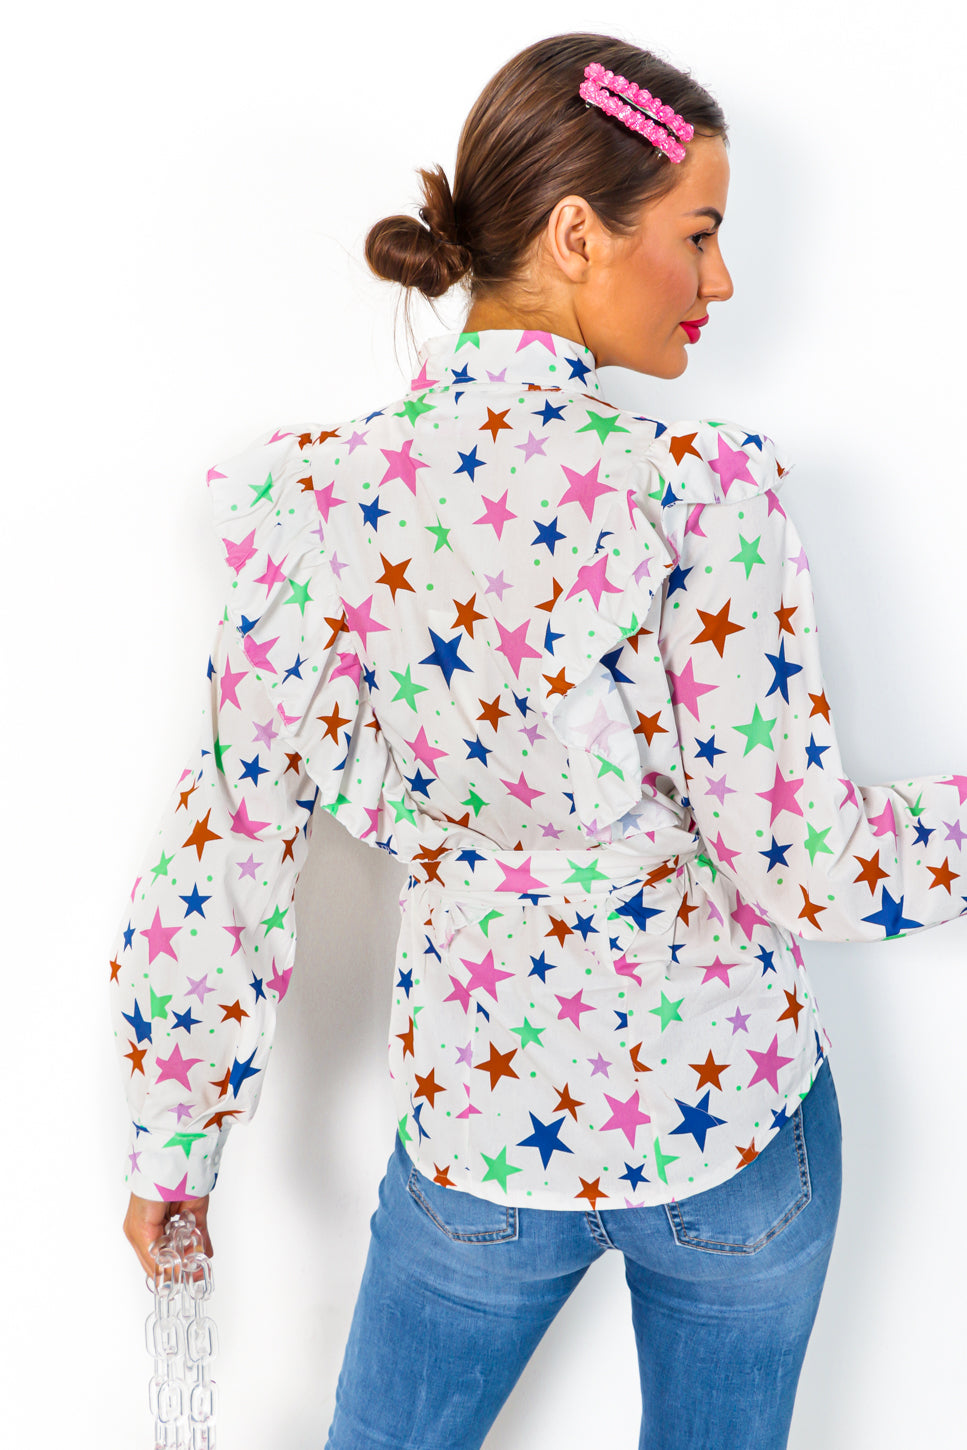 You're A Star - White Star Print Shirt